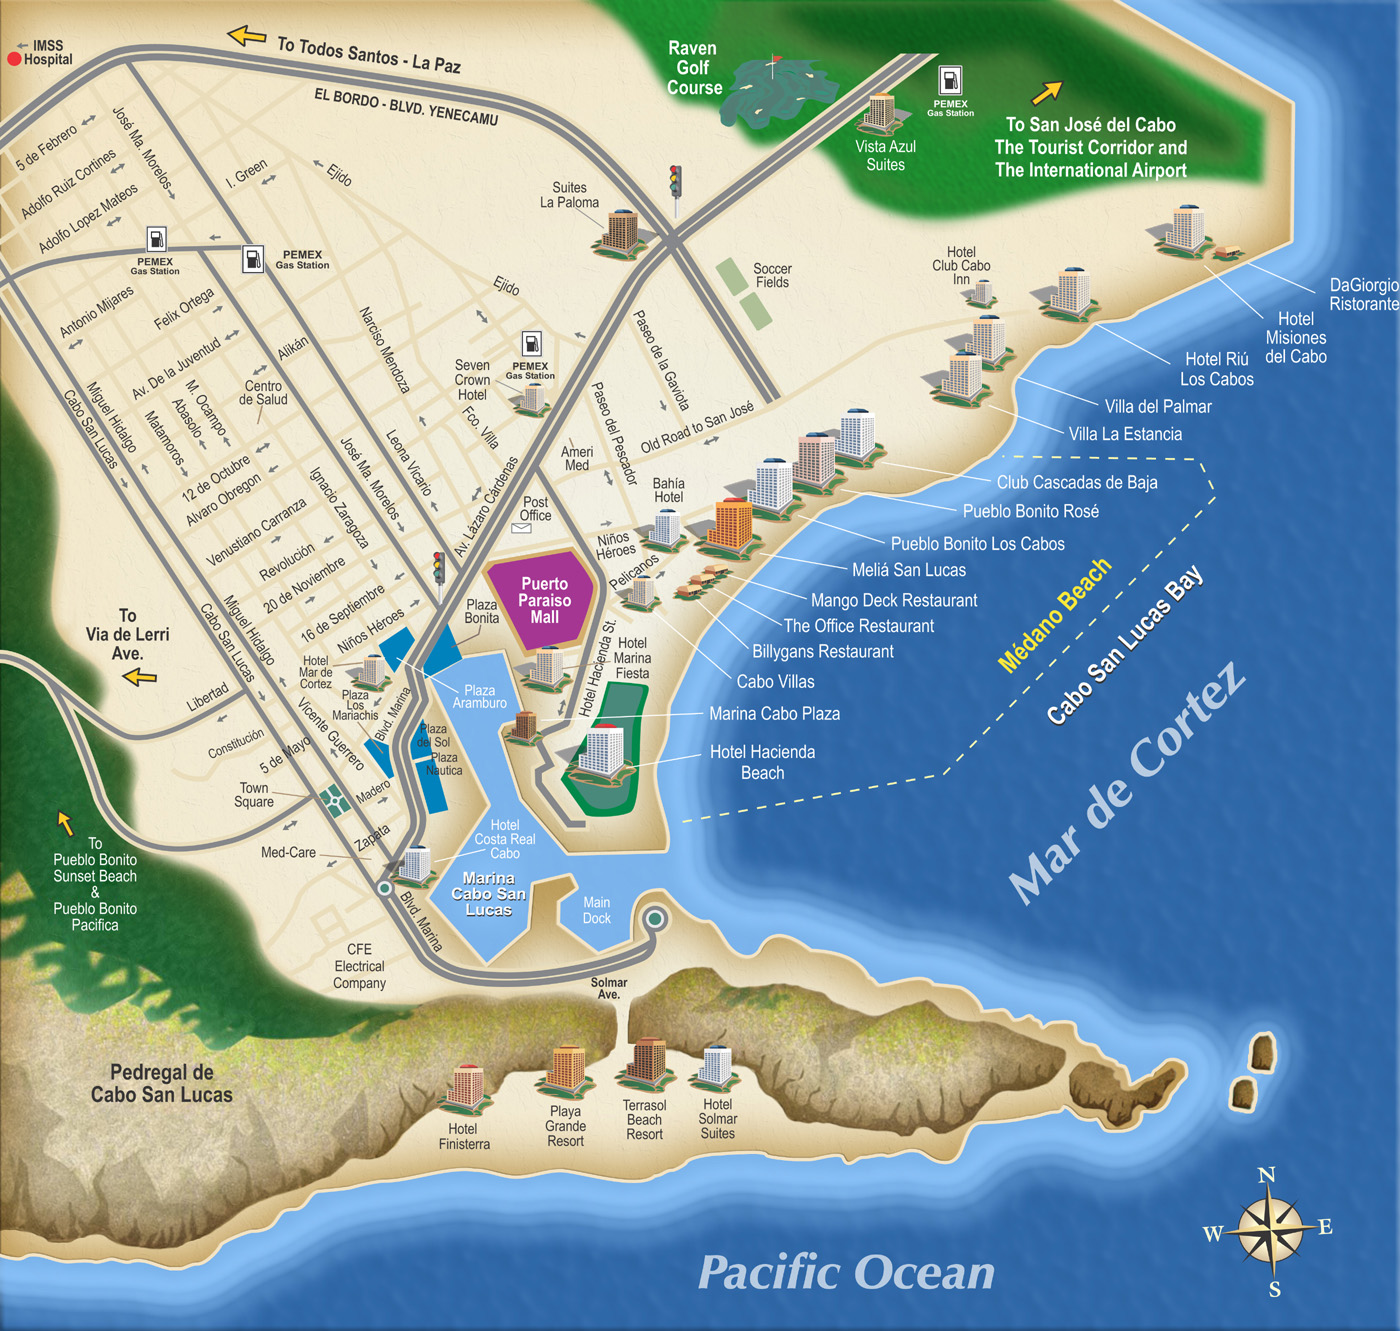 Location / Marina Map